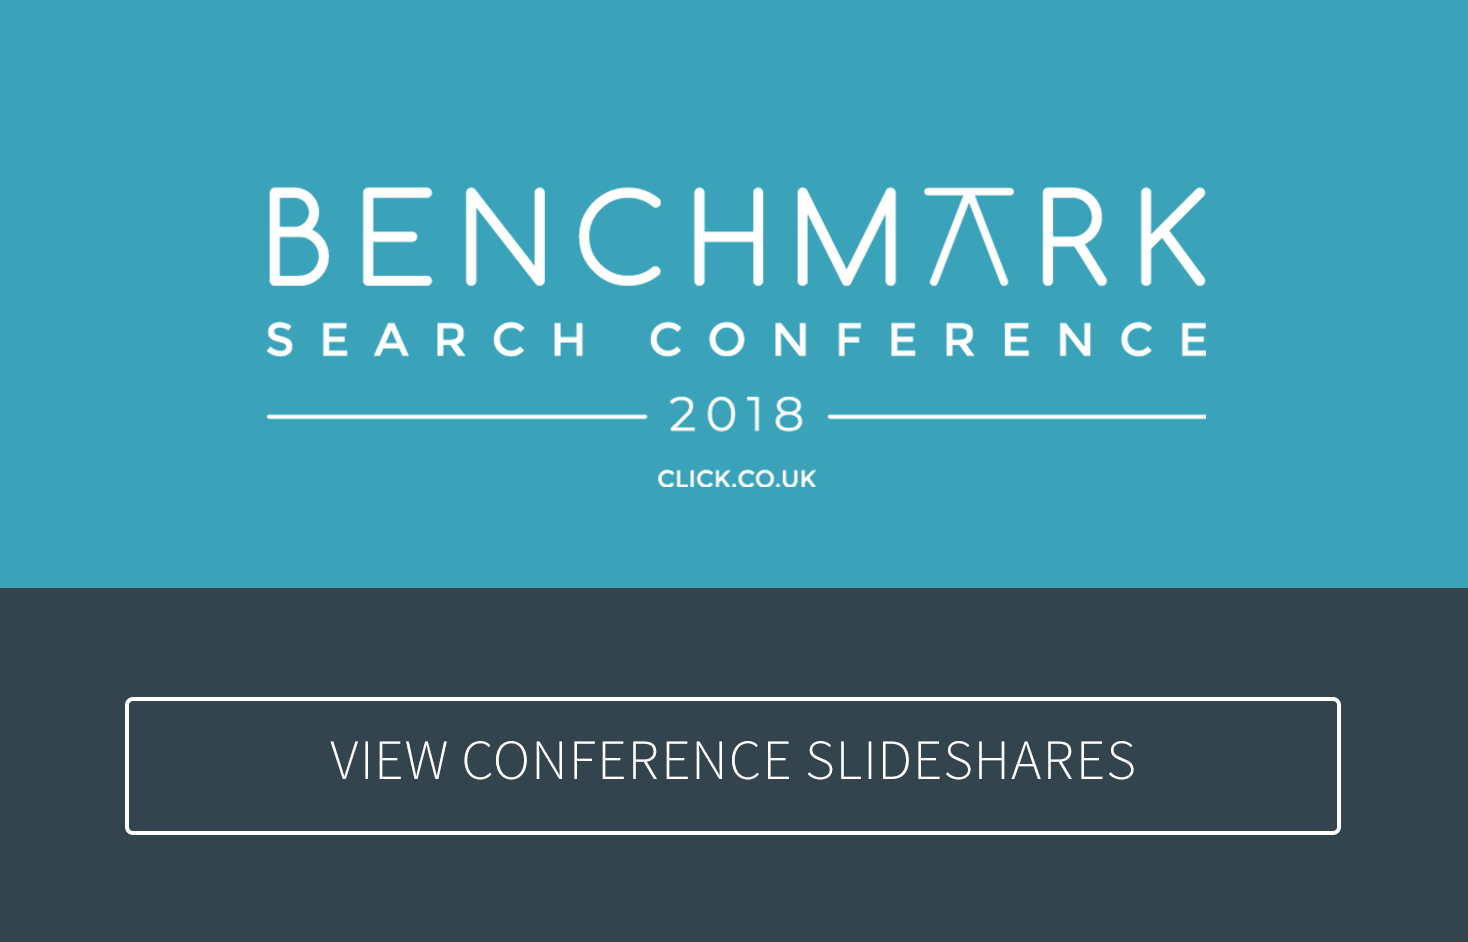 benchmark-view-slideshares